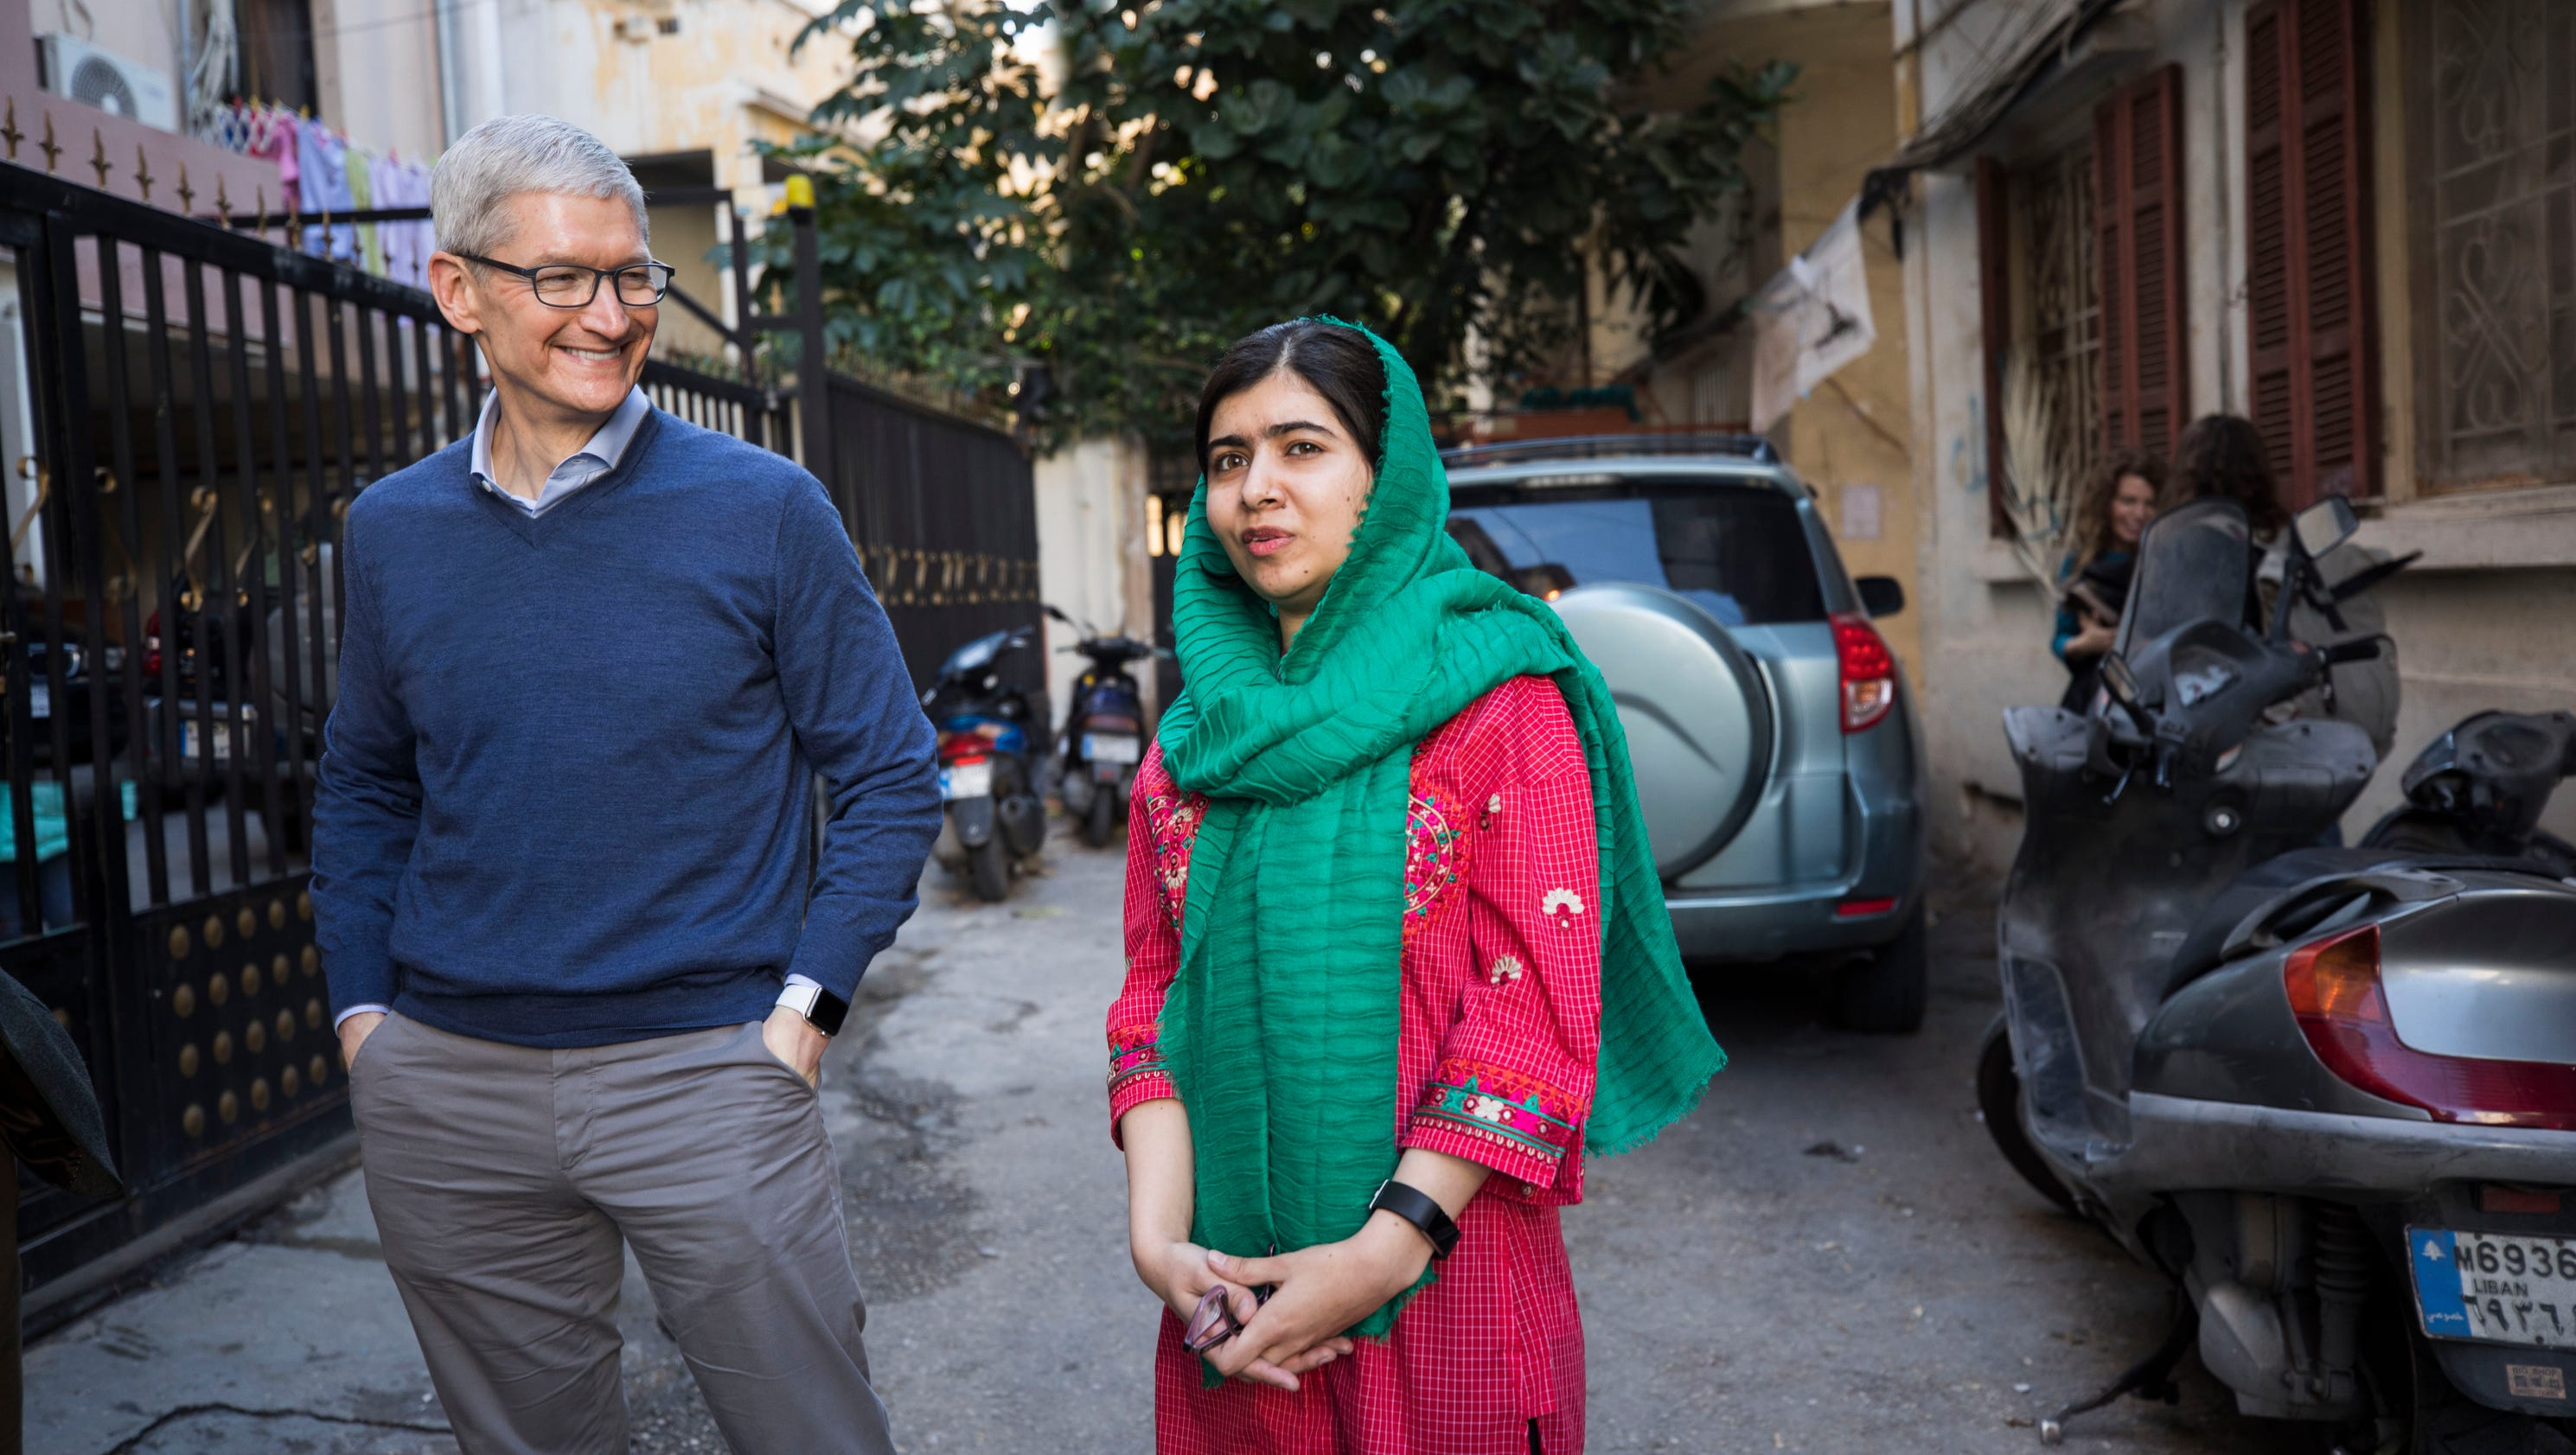 Apple makes significant investment in Malala's education fund